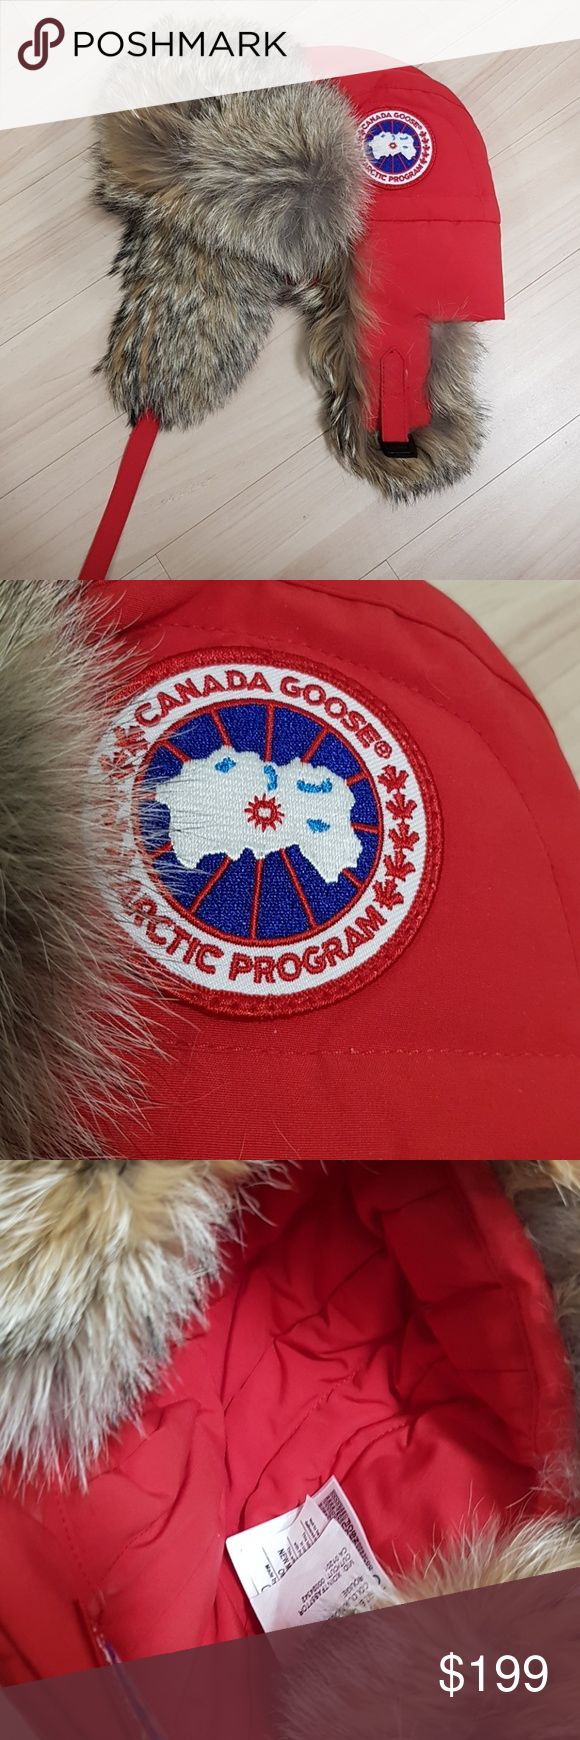 Auth canada goose aviator hat with coyote fur s-m Size s-m  Authentic..i just dont use it took the tag off never been used..new without tag condition...closet cleaning.... Canada Goose Accessories Hats